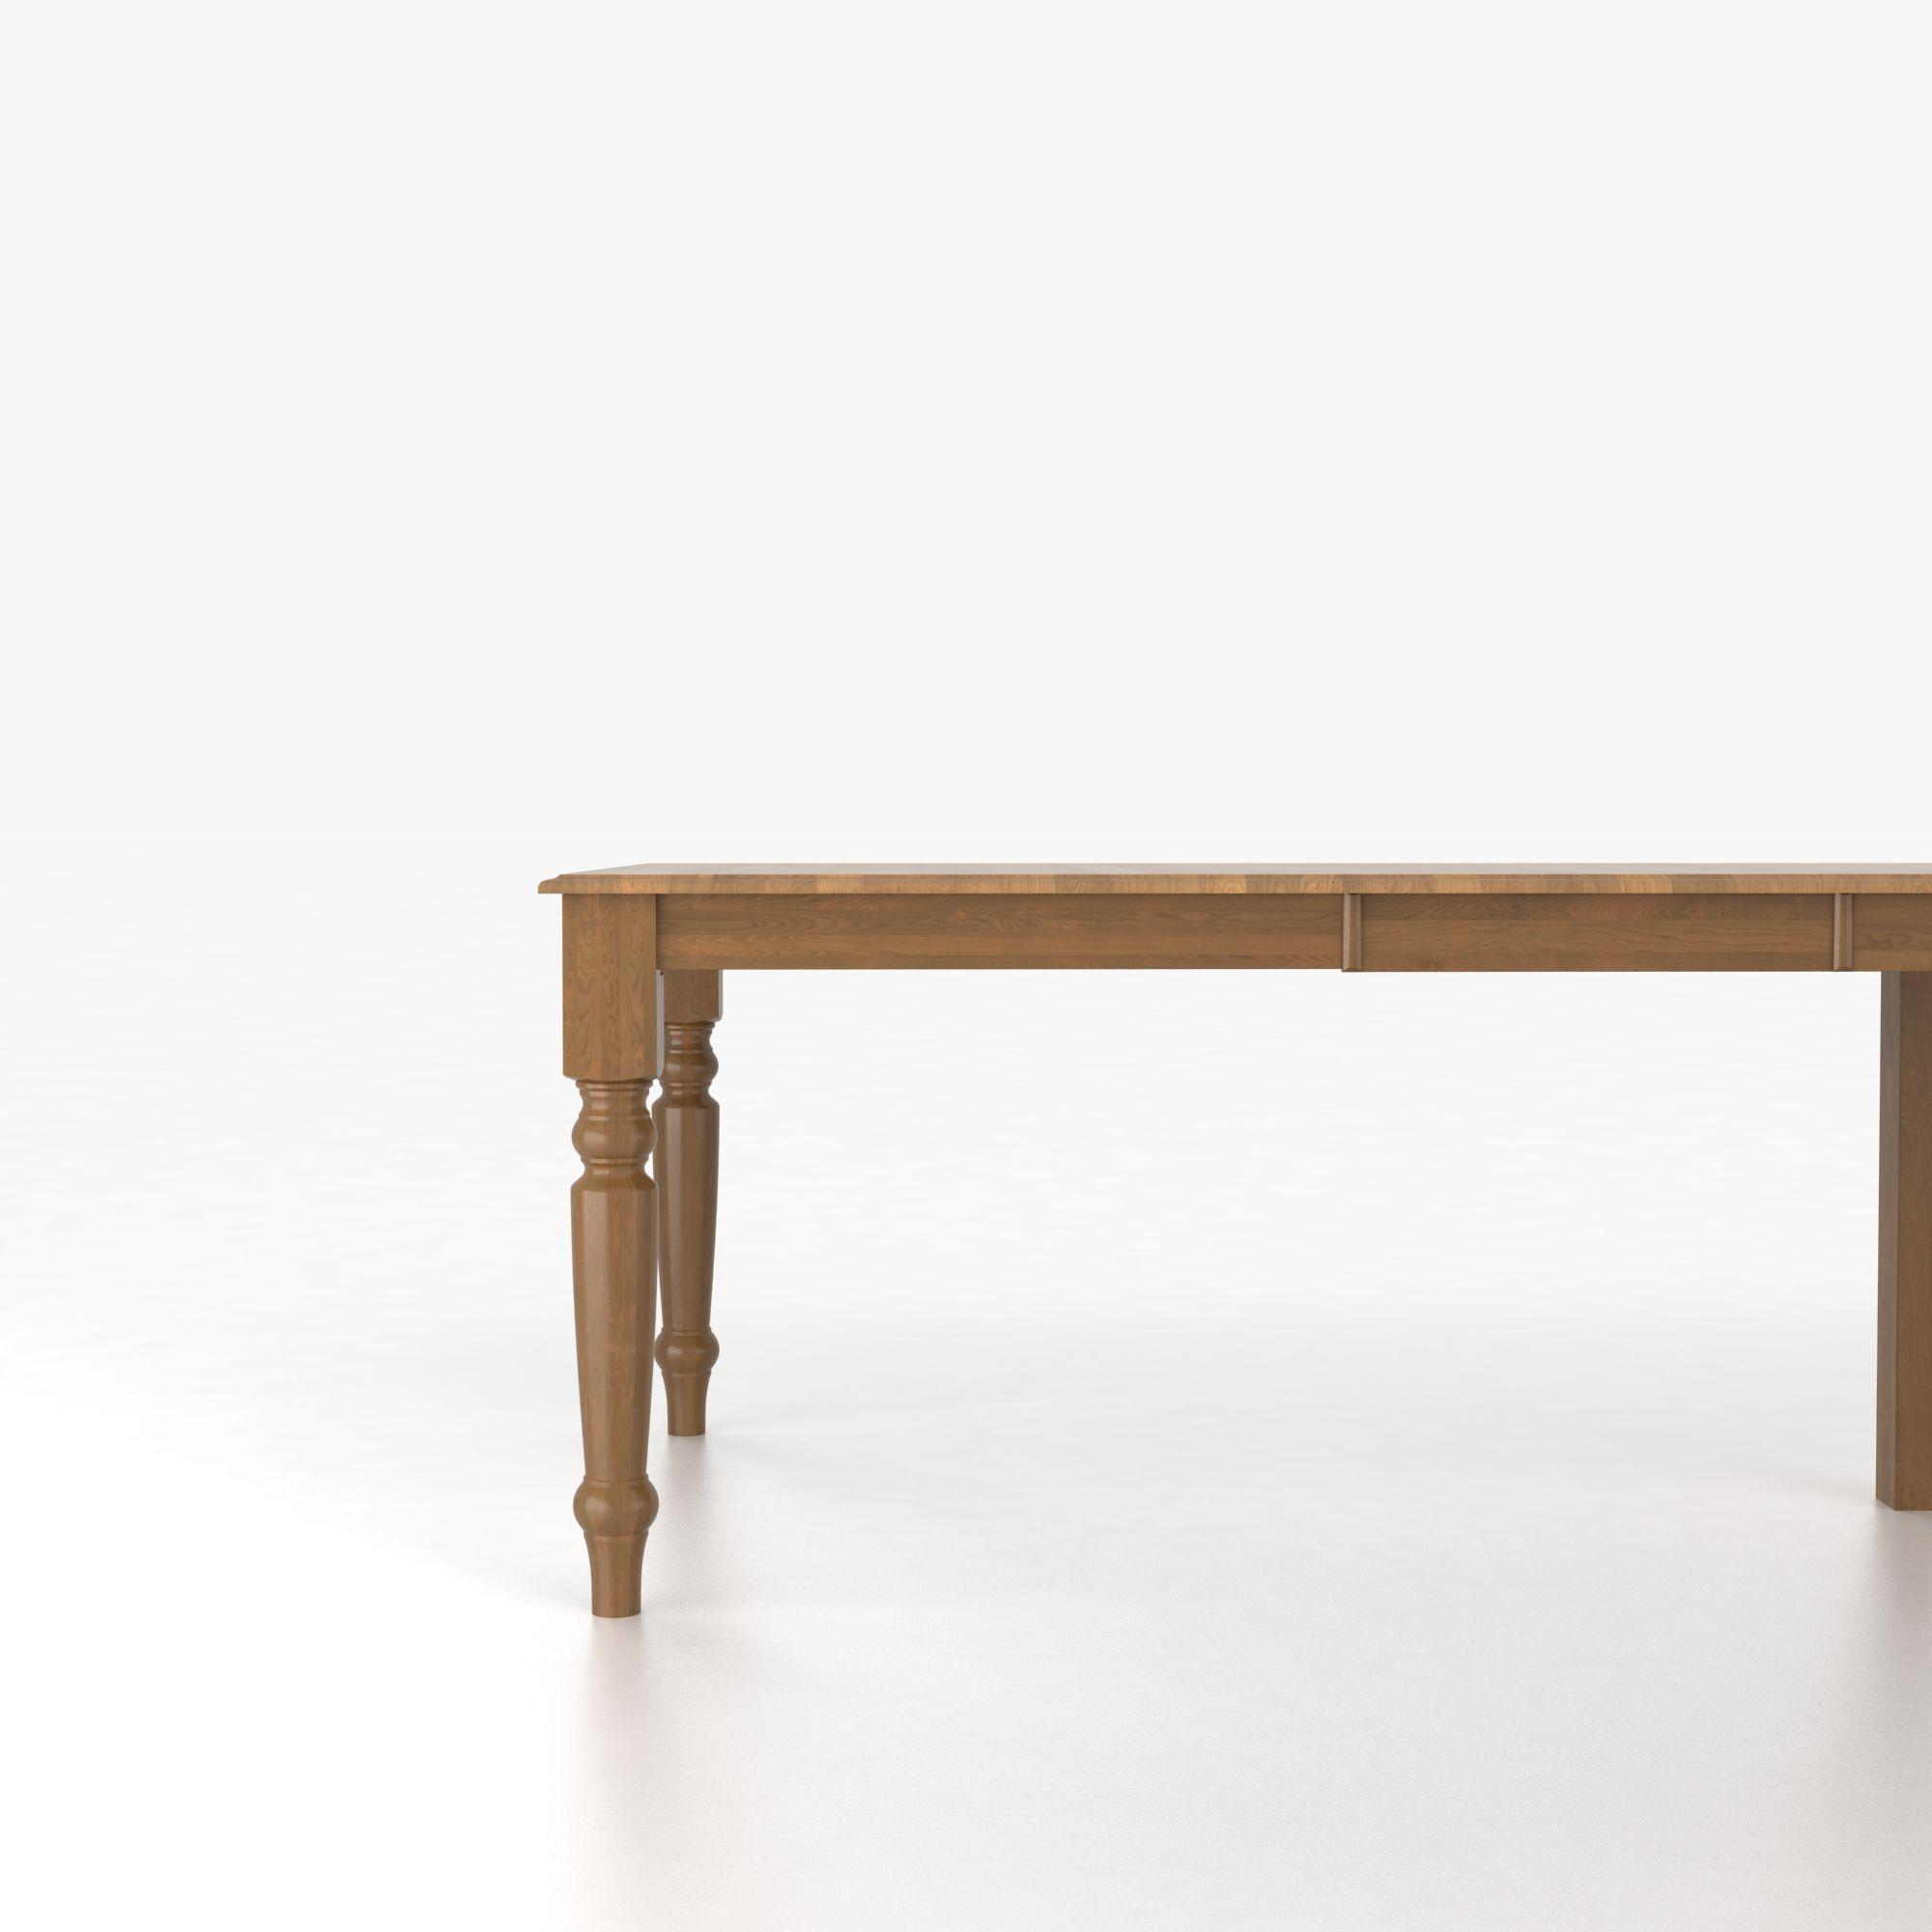 Canadel Custom Dining Tables Tre048680103maaa3 Customizable Rectangular Table With Legs Dunk